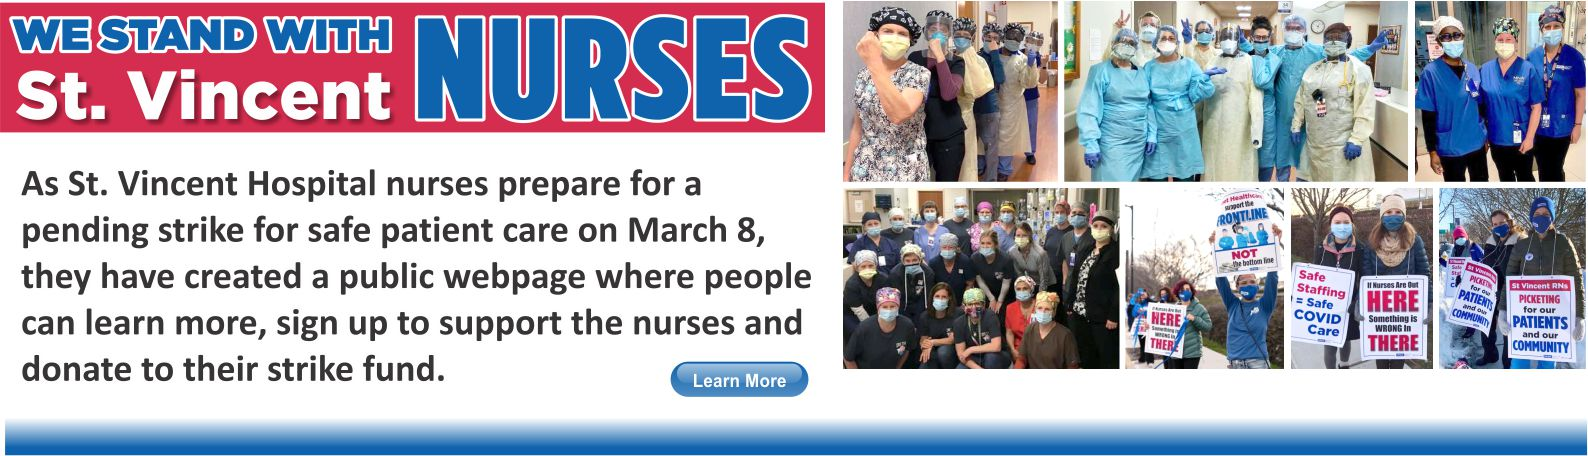 We Stand with St. Vincent Nurses